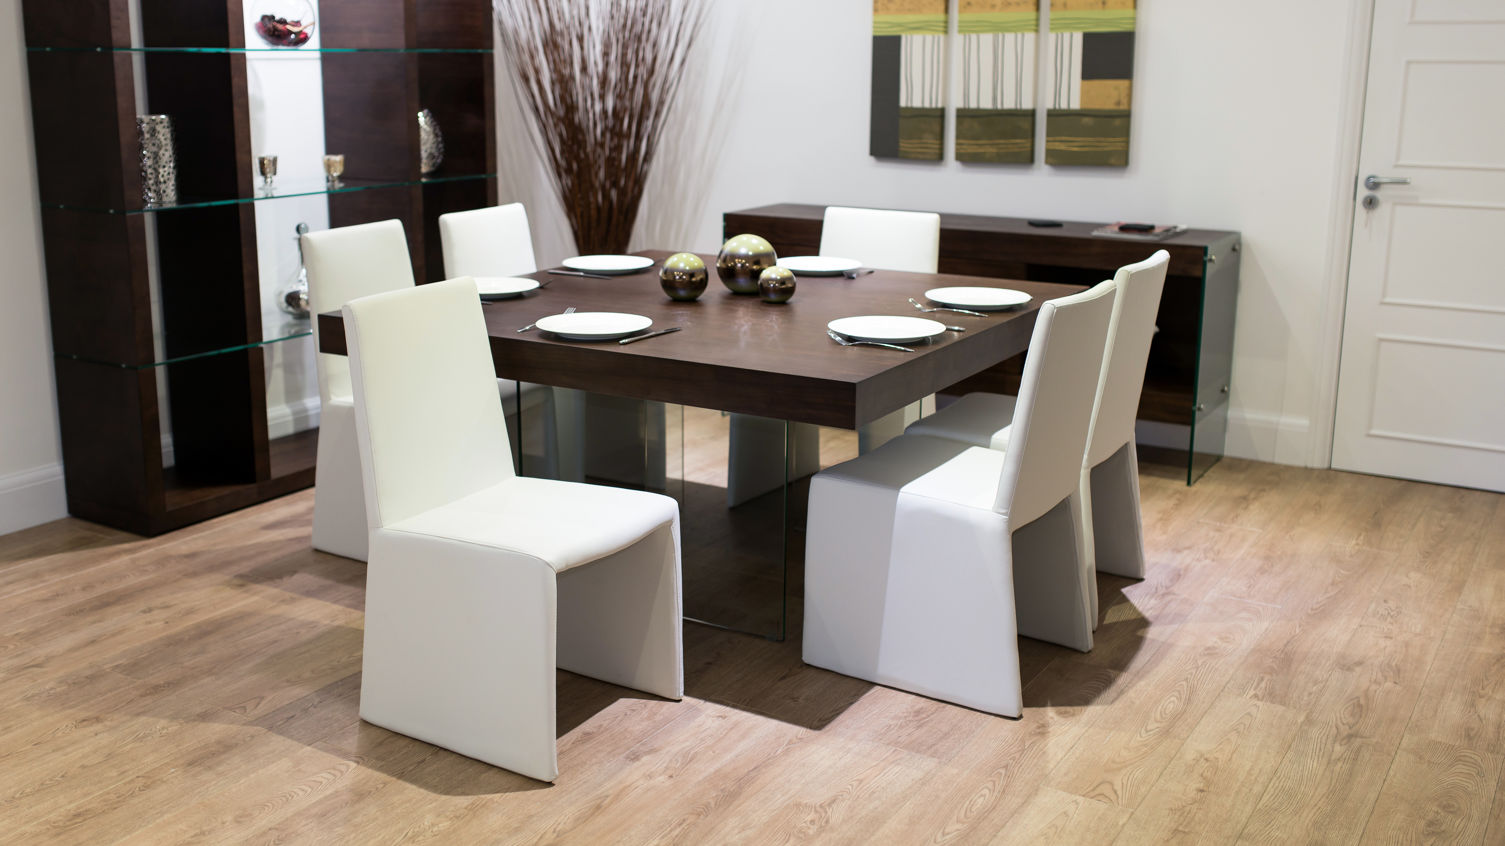 Modern Glass Kitchen Table Square Dining Table For 4 Dining Table 4 Chairs Fancy Dining Room